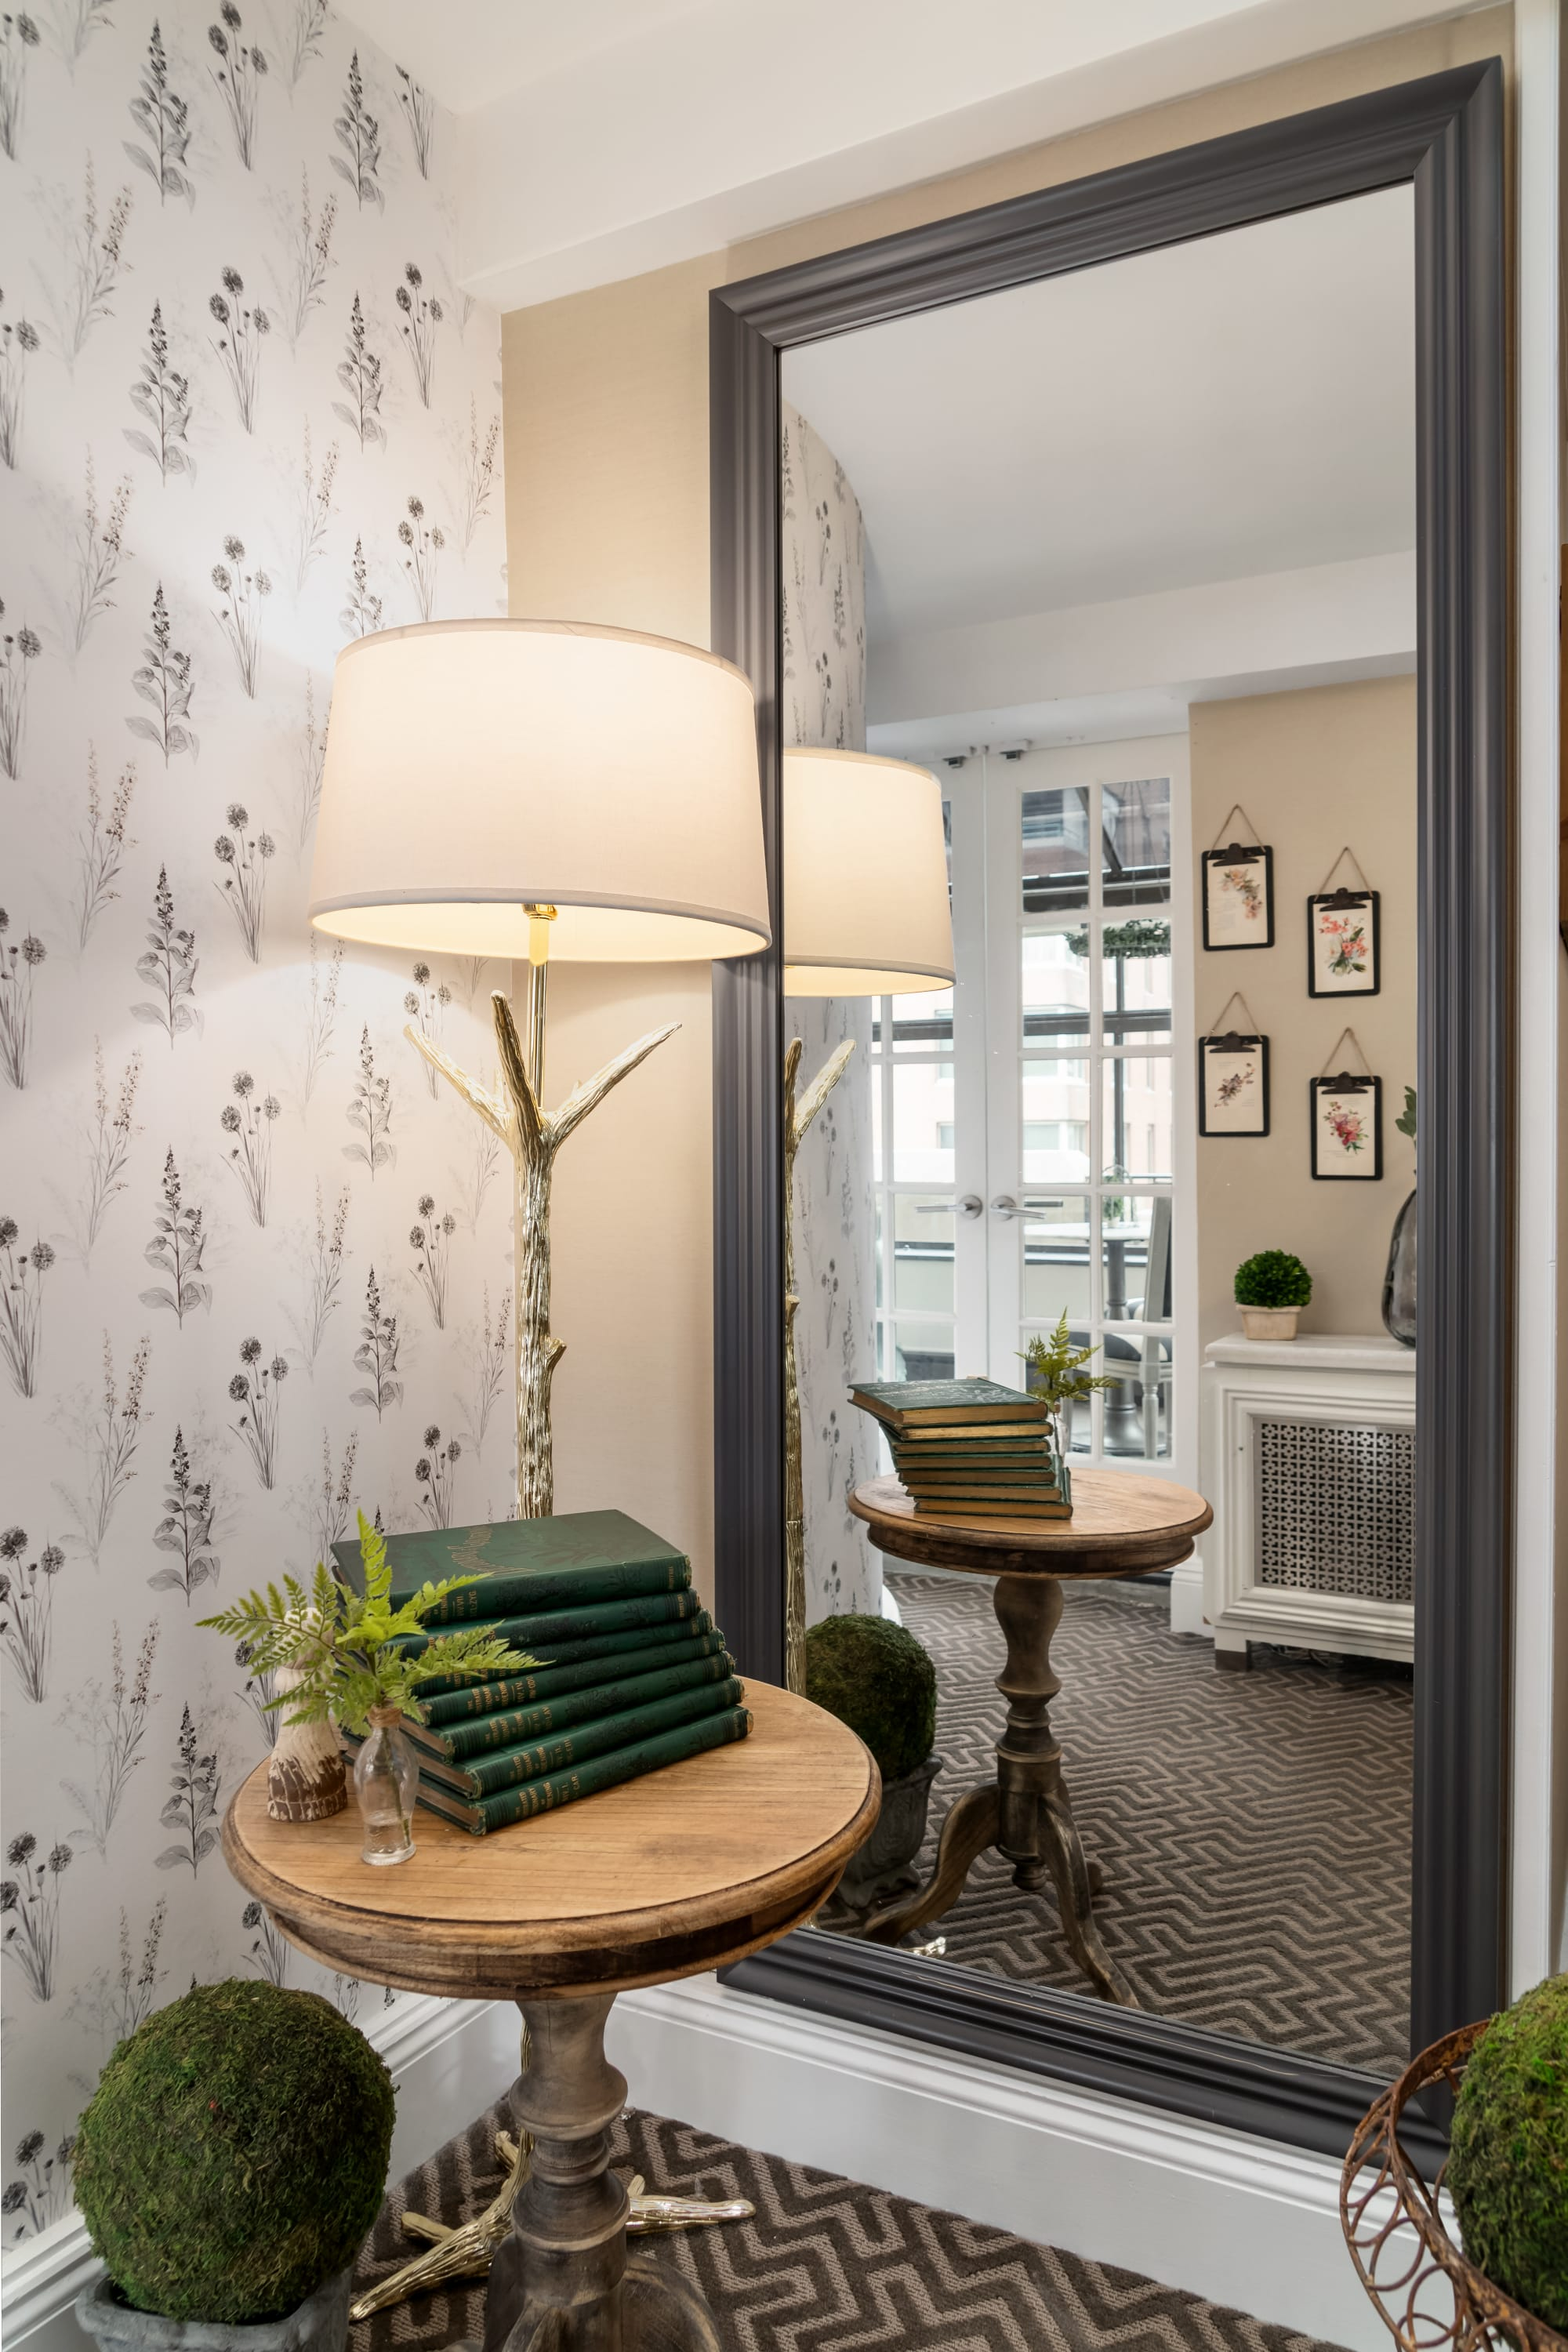 Interior Design by fringe seen at The Lexington Hotel, Autograph Collection, New York - The Conservatory Suite